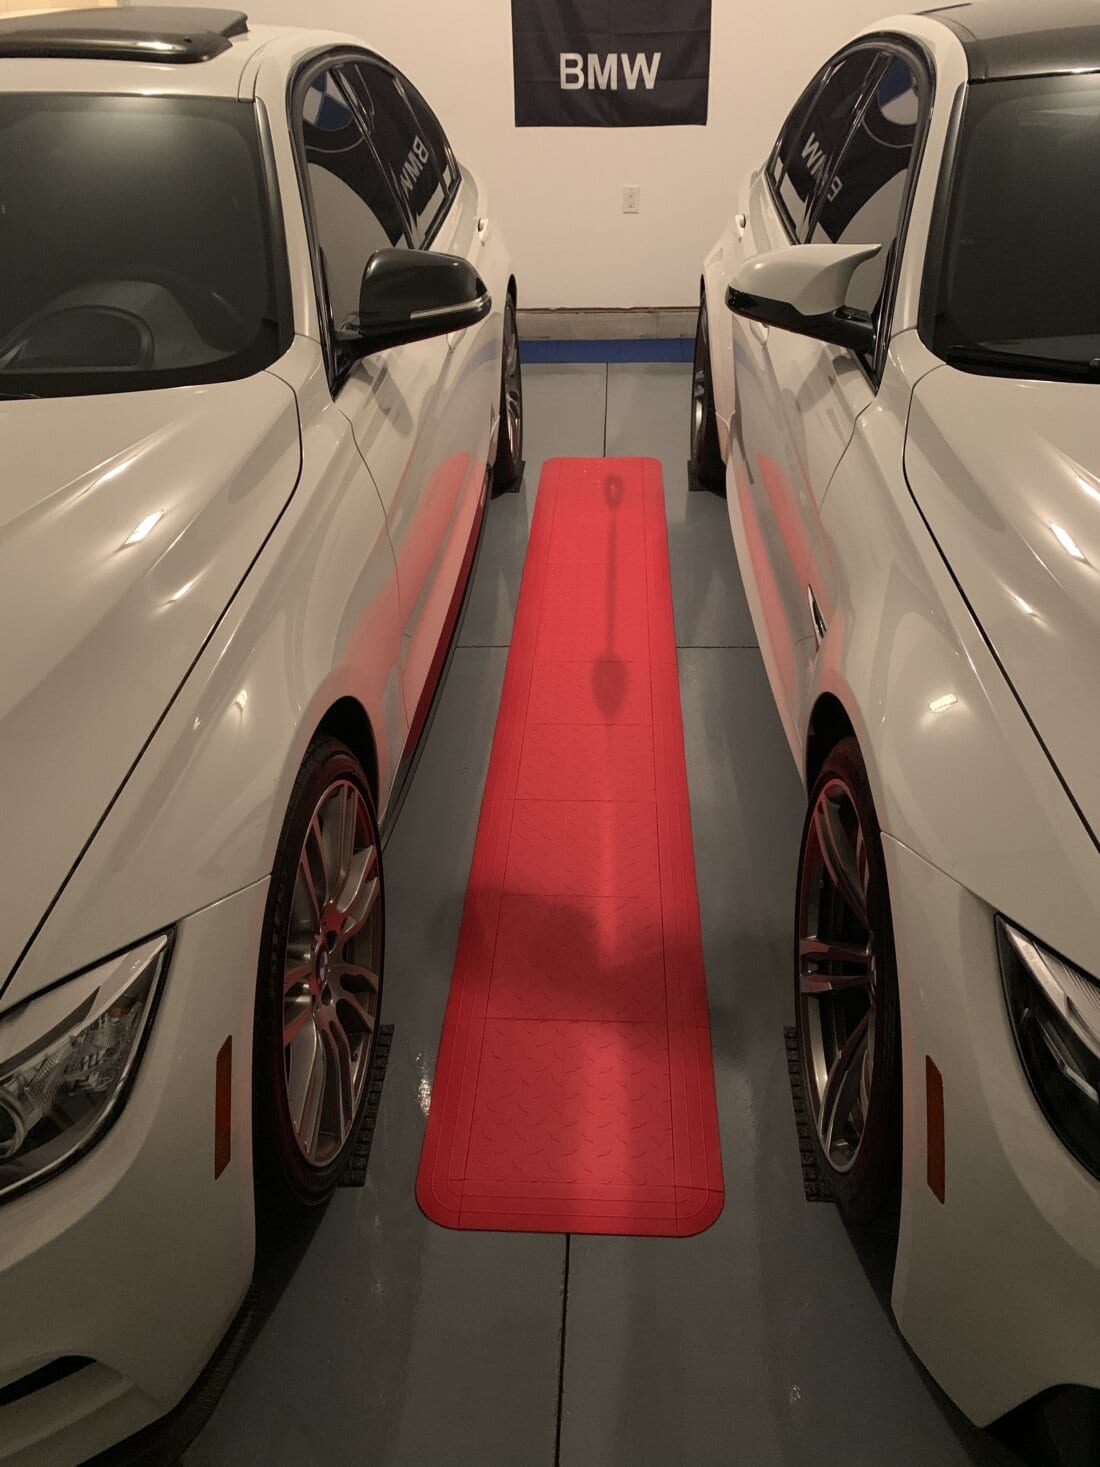 White cars with red tile stripe